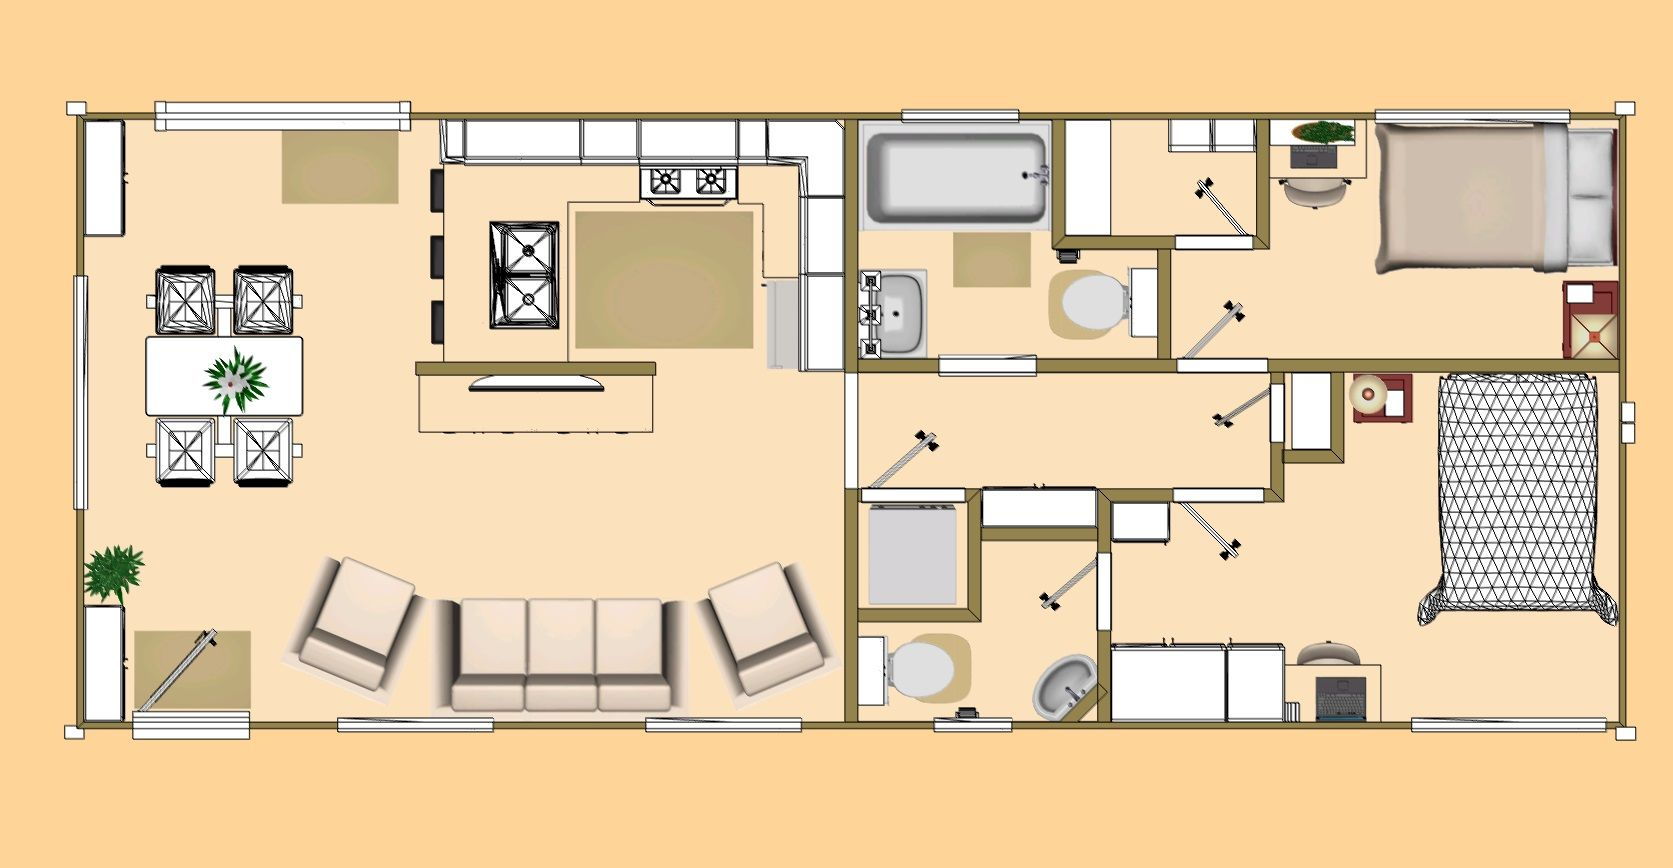 Floor Plan Of Our 640 Sq Ft Daybreak Floor Plan Using 2 X 40 Shipping Containe Container House Plans Building A Container Home Shipping Container Home Designs